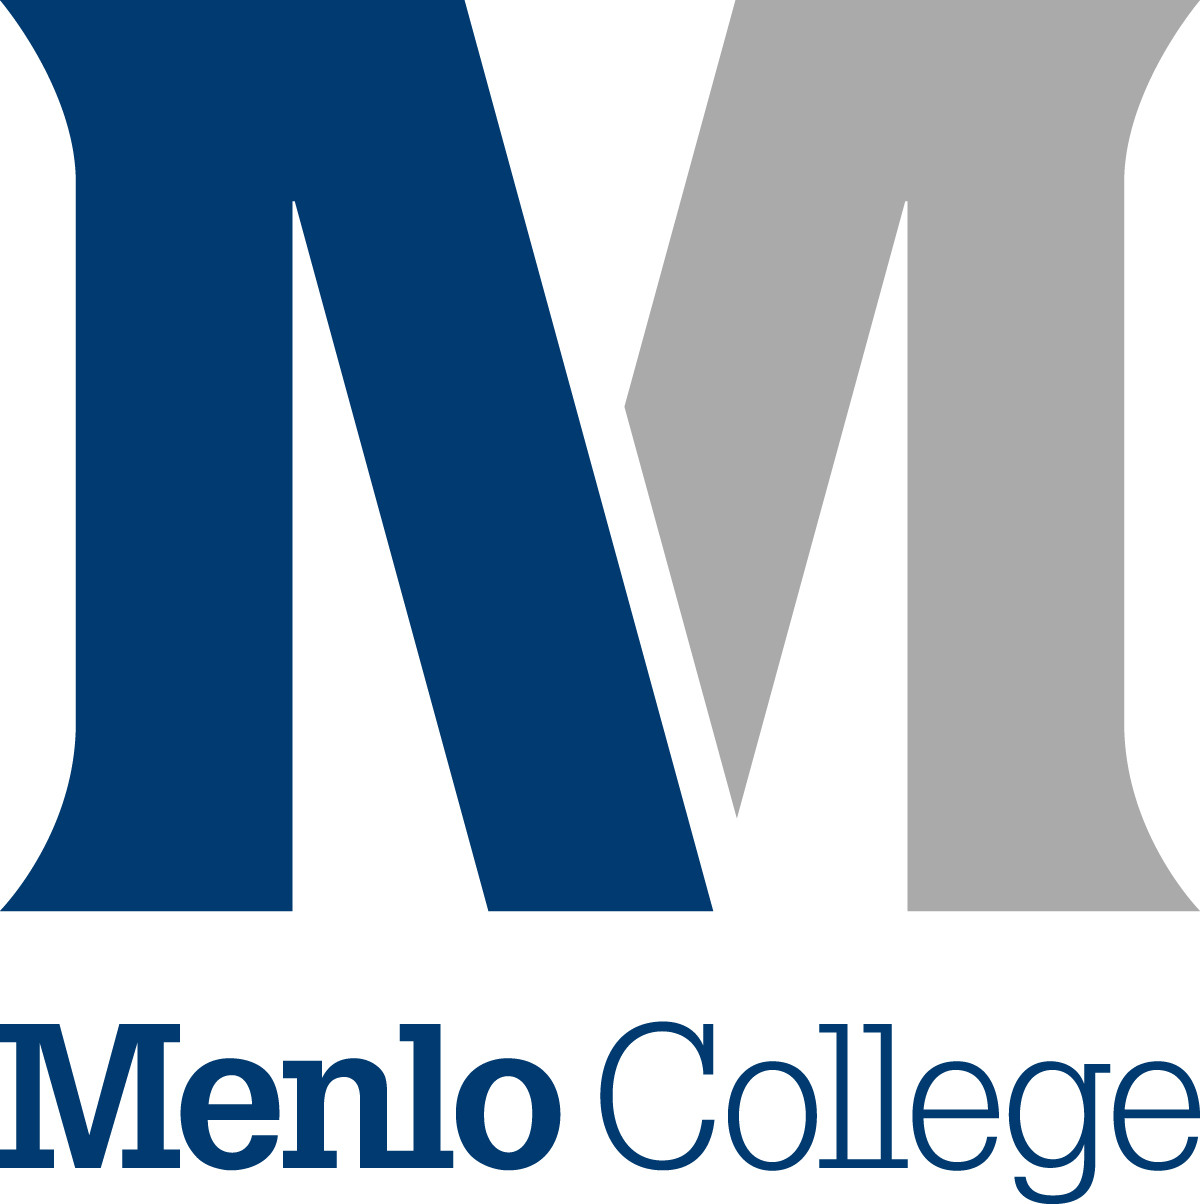 menlo-college-logo-vertical-lockup-full-color-jpg